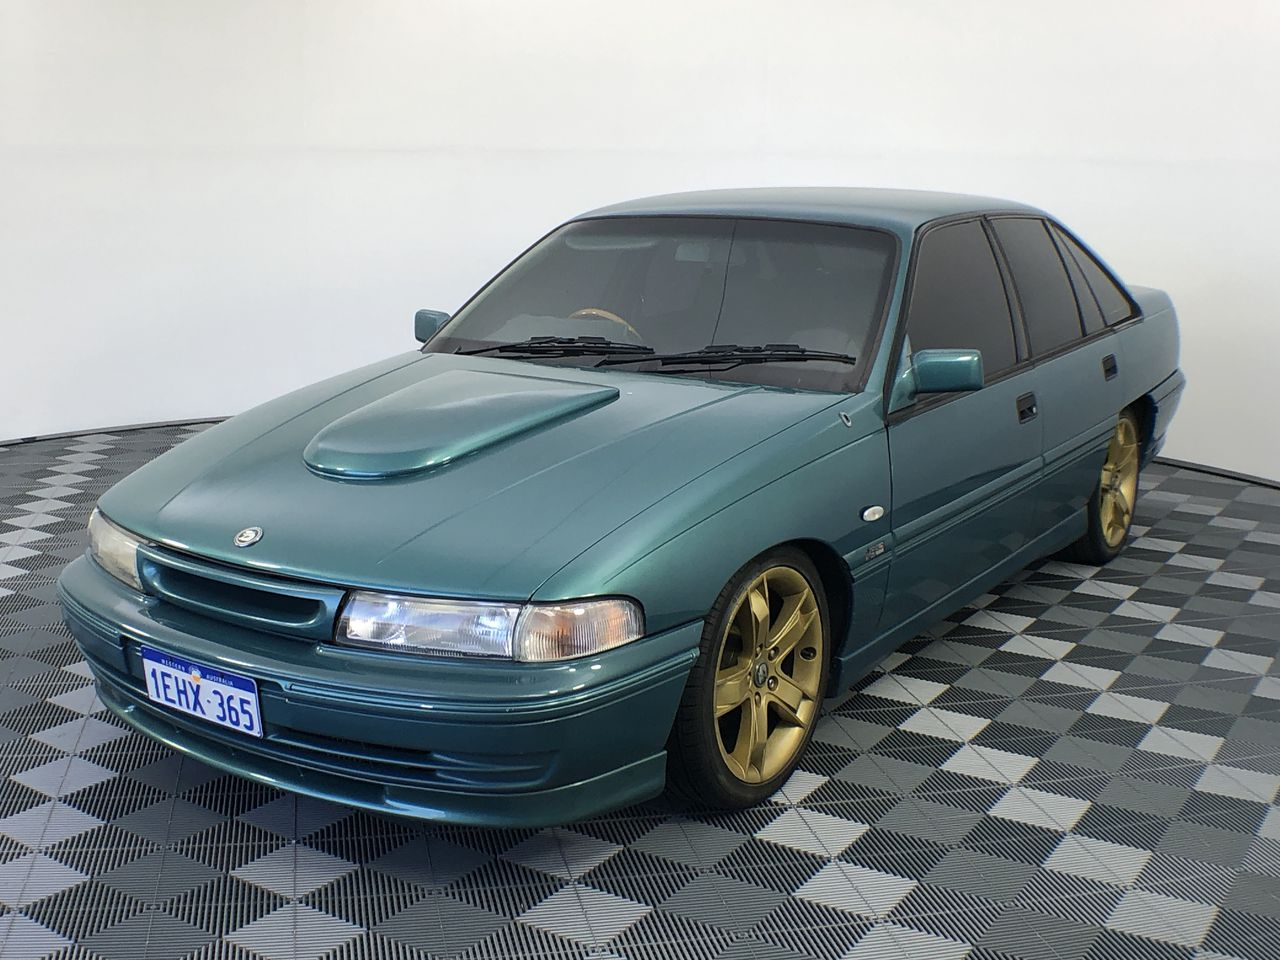 1992 Holden Berlina 5.0ltr V8 VP Auto Sedan